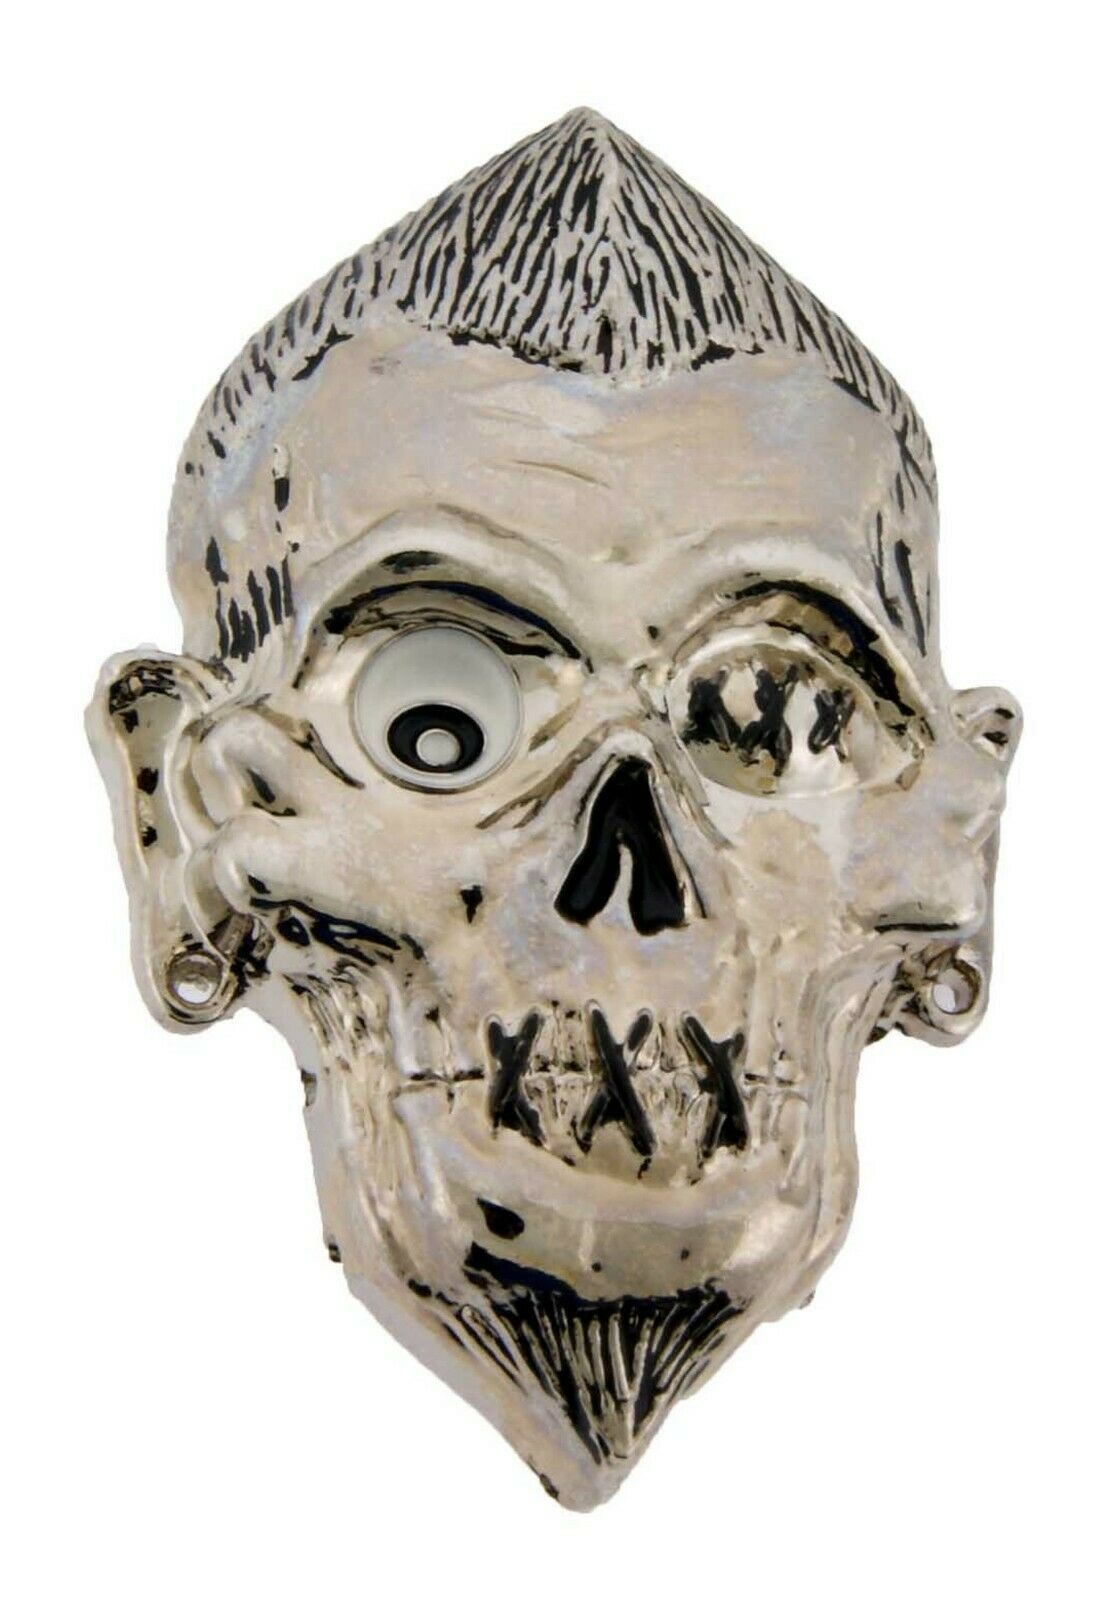 Skull Belt Buckle Secret Compartment Silver Metal Halloween Gothic Tattoo Style